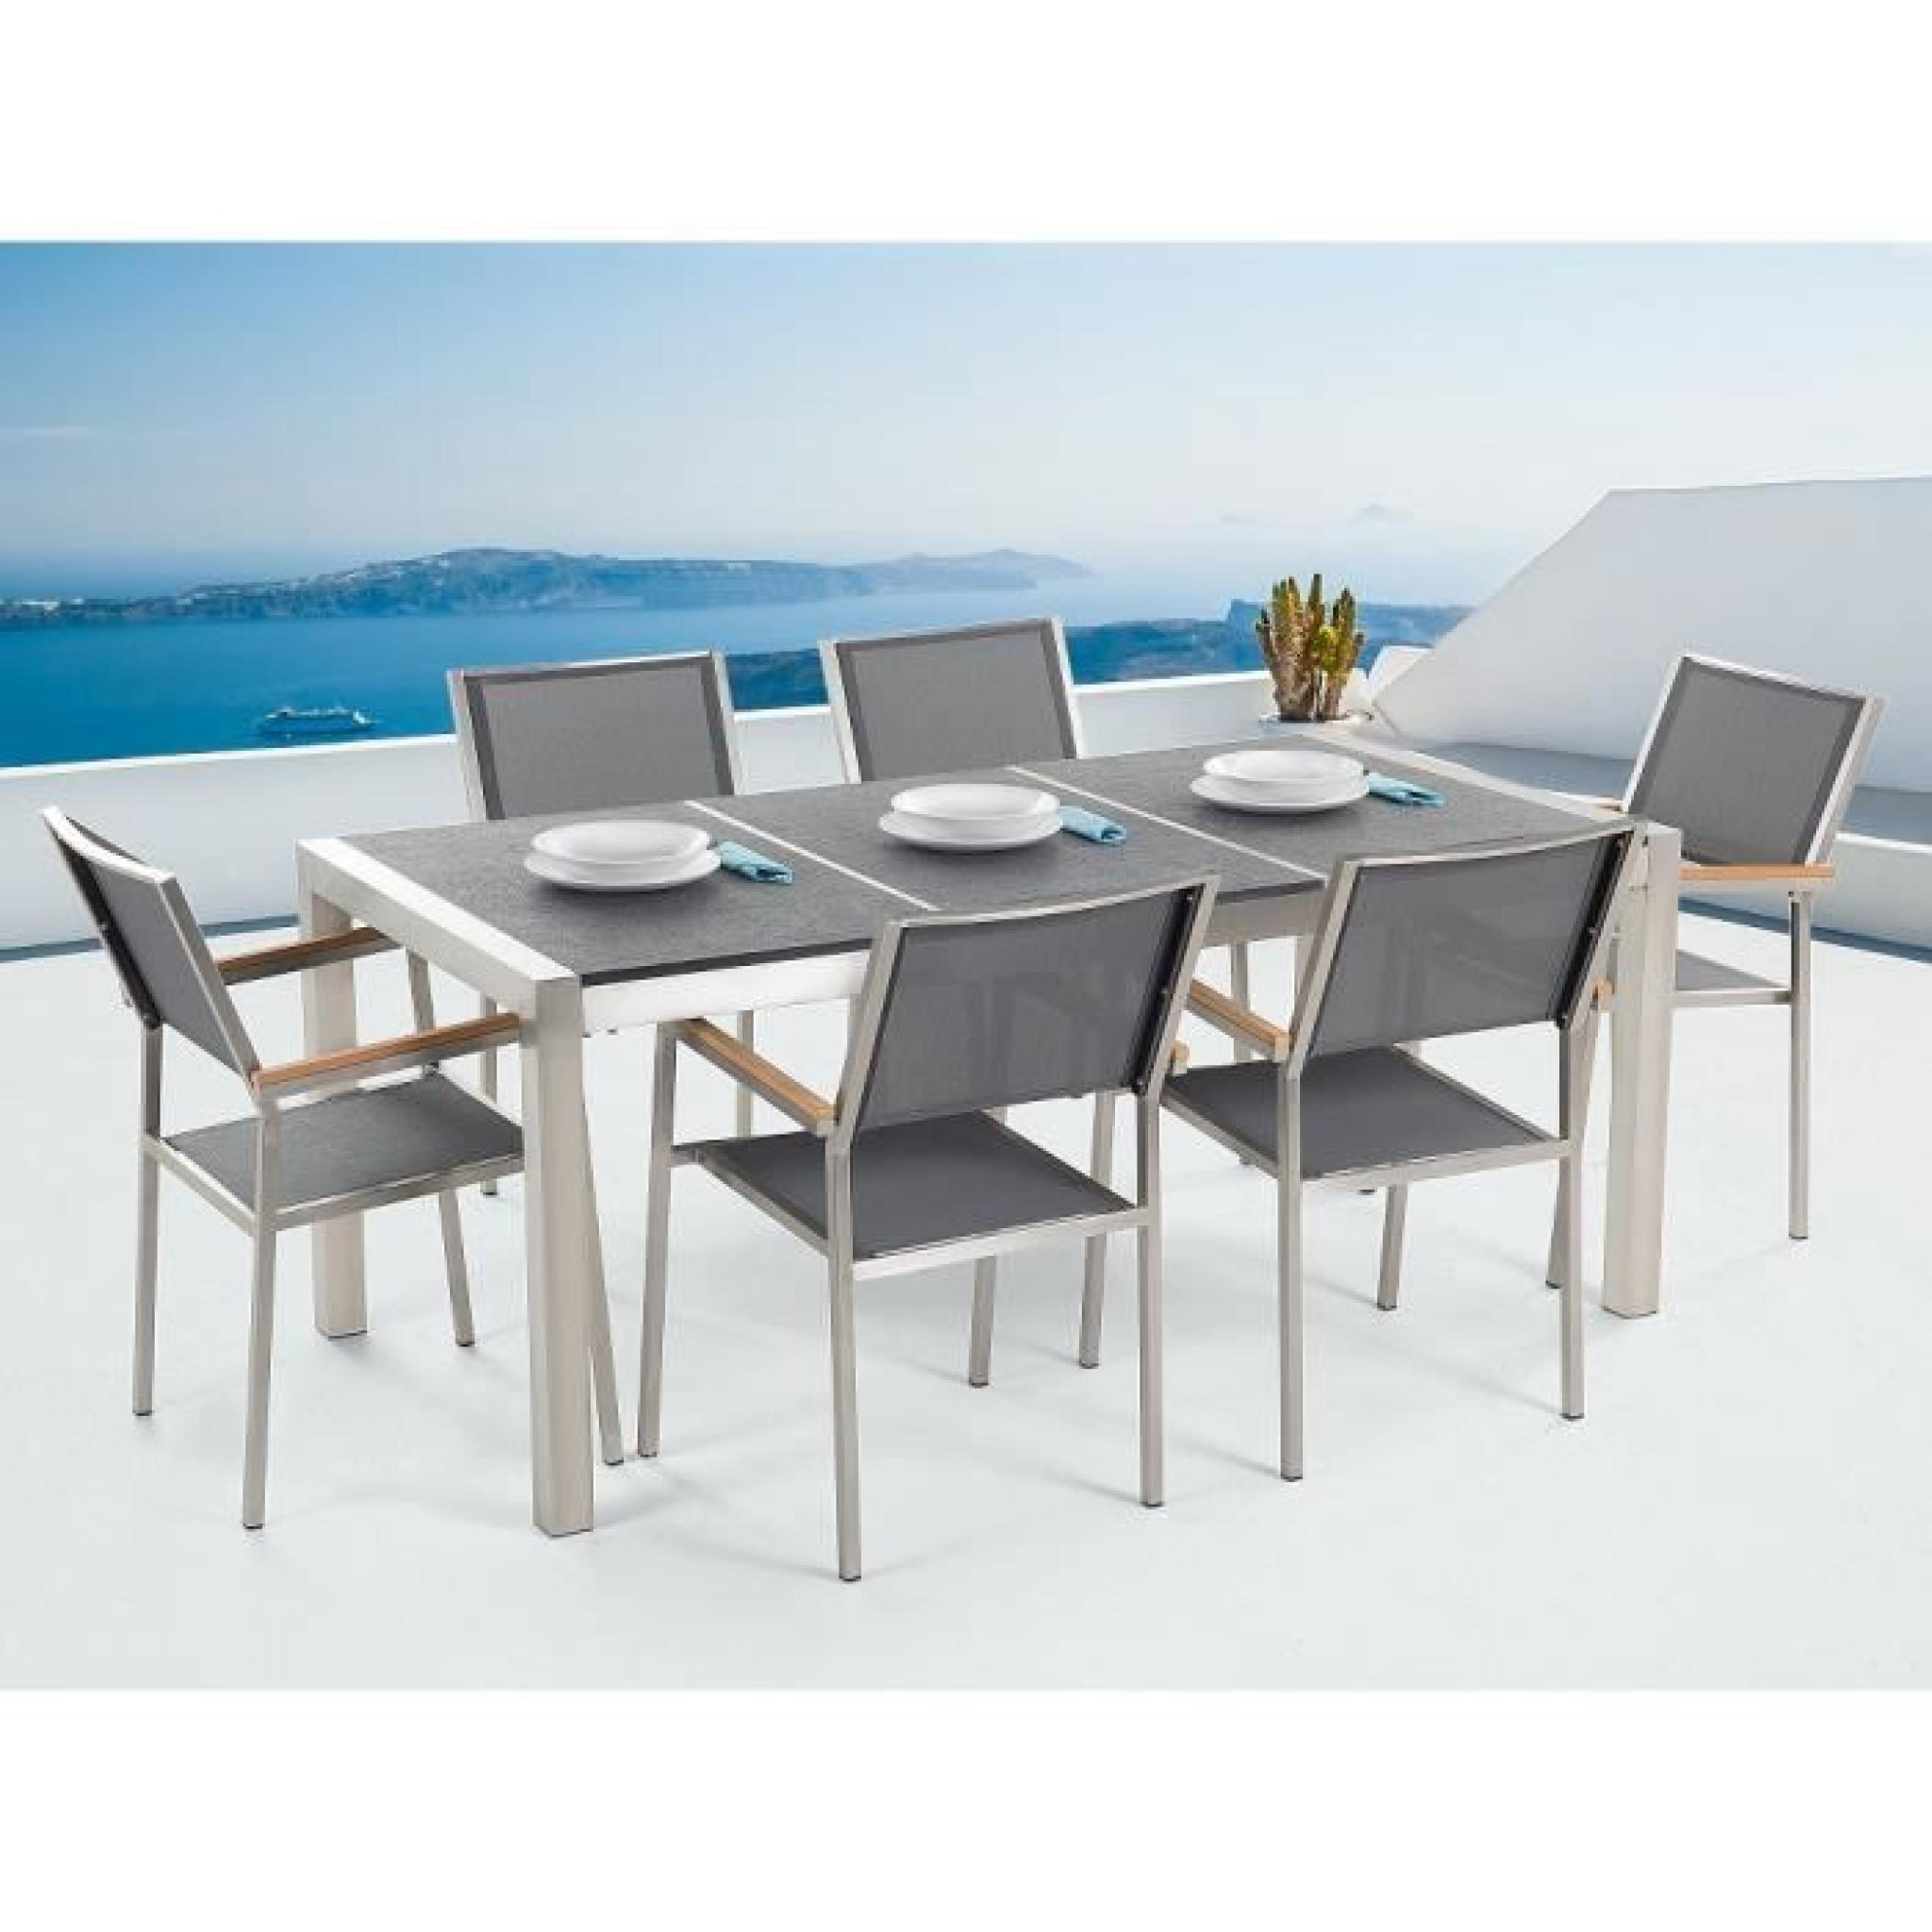 table de jardin acier inox plateau granit triple noir poli 180 cm avec 6 chaises en textile. Black Bedroom Furniture Sets. Home Design Ideas